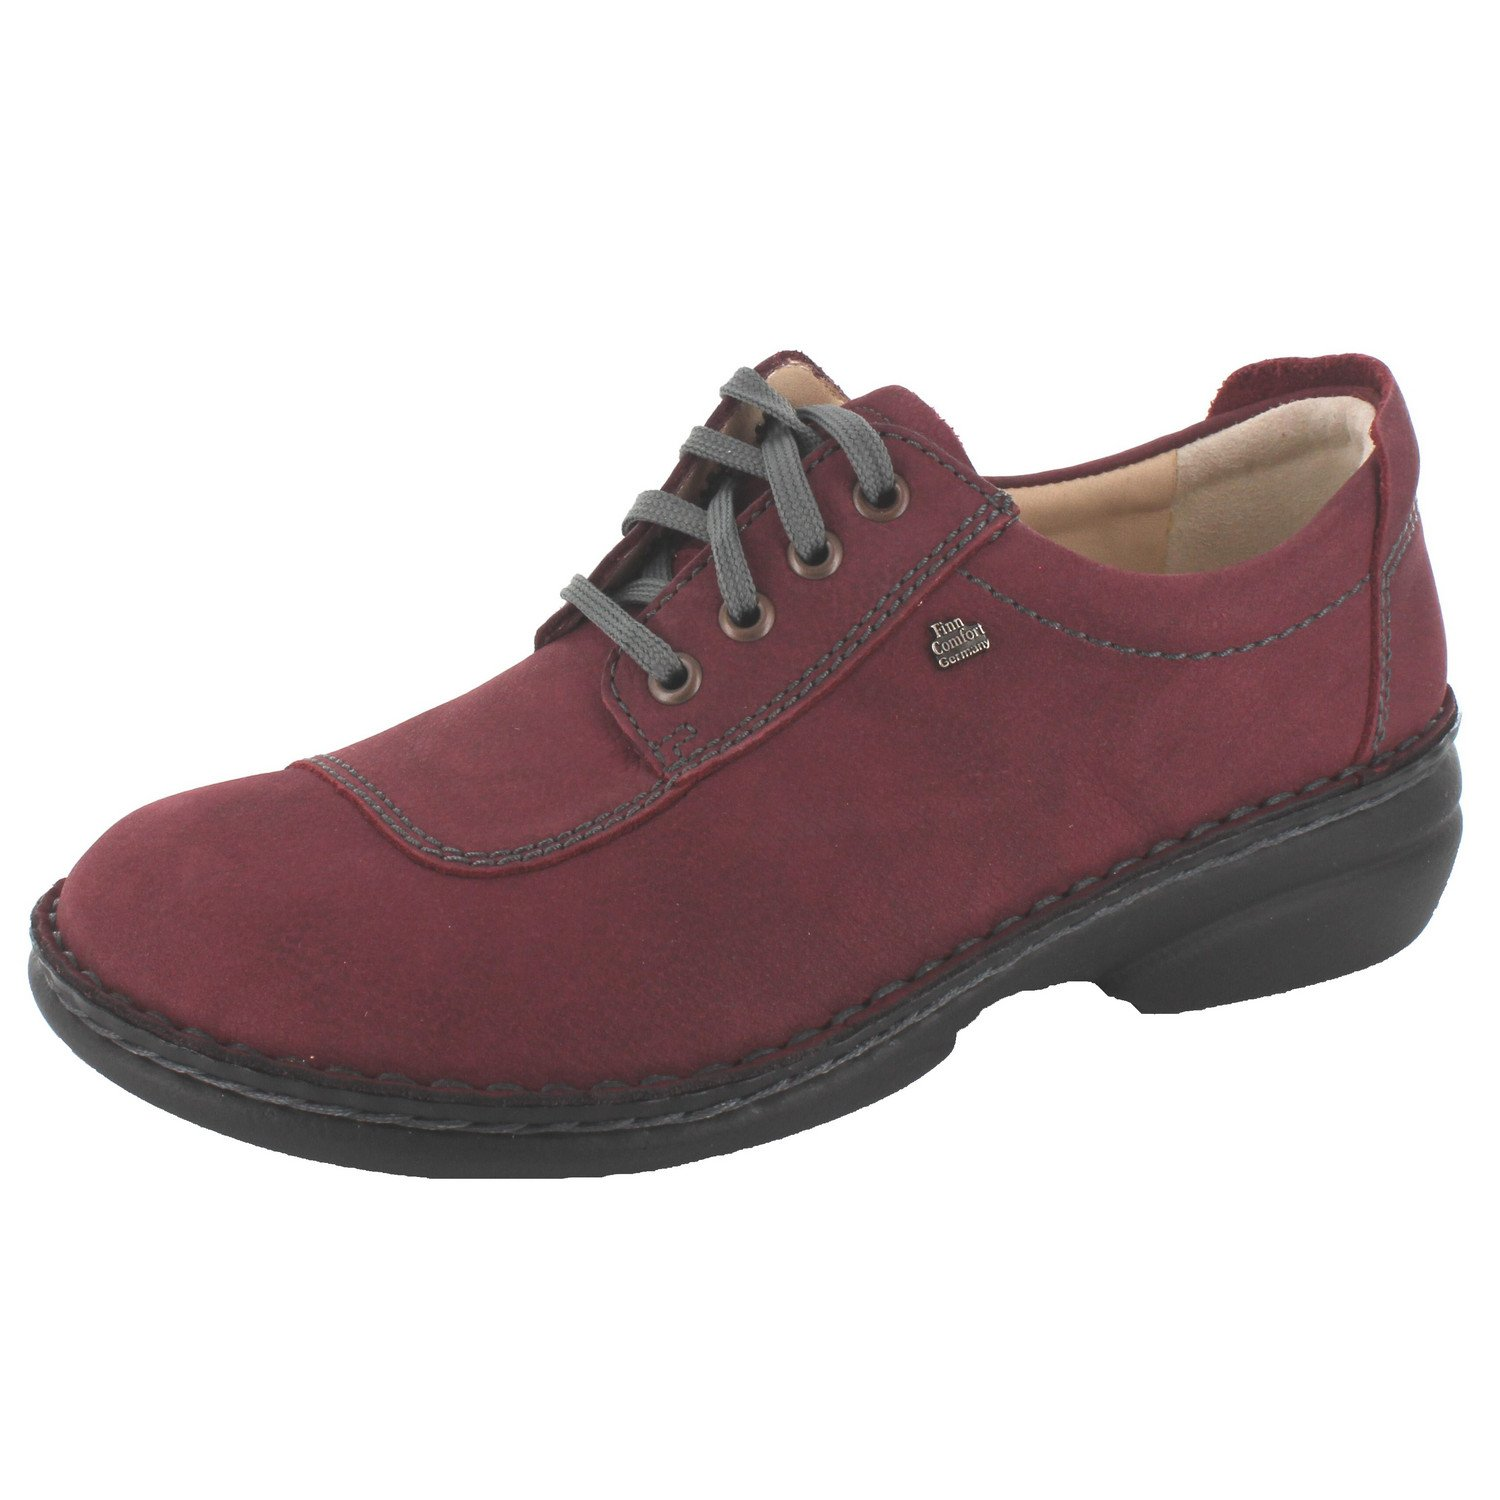 FinnComfort Schnürschuh Lexington 36 4vkeI1kcGT